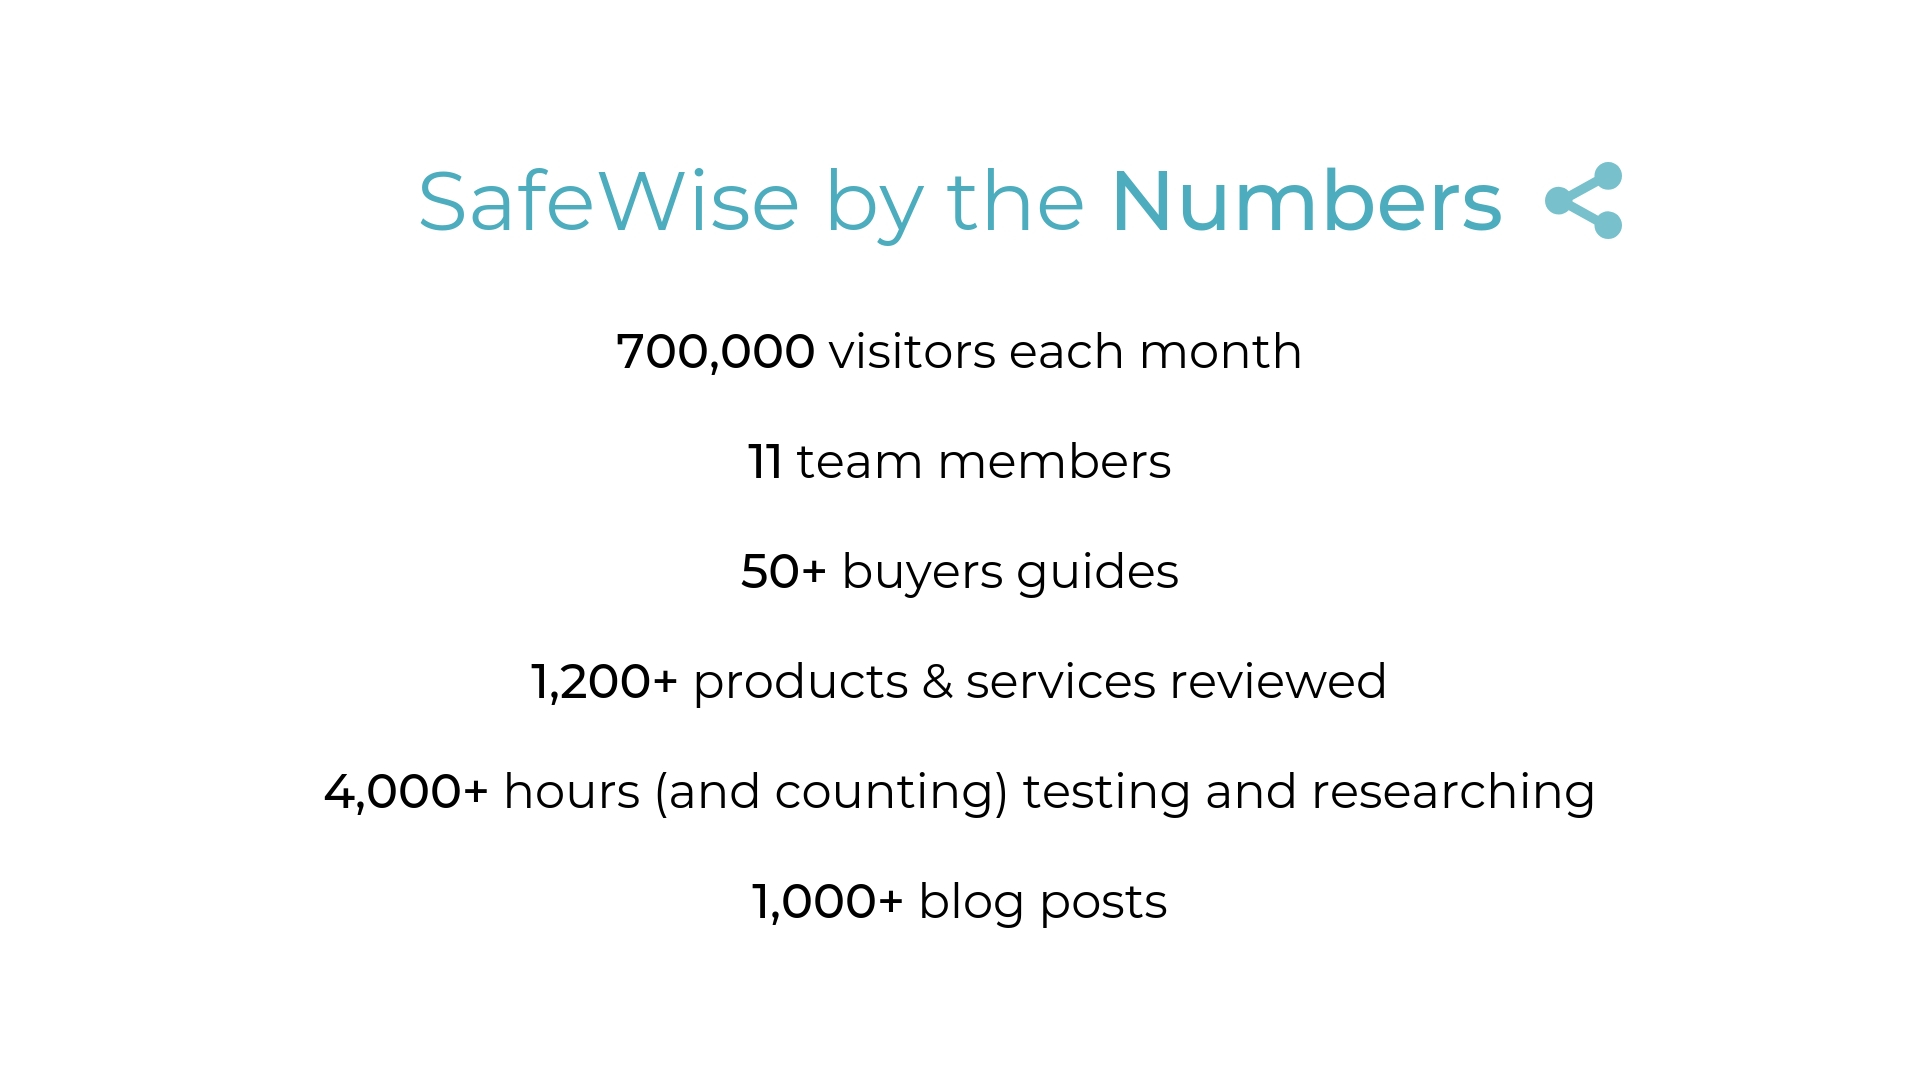 SafeWise by the Numbers